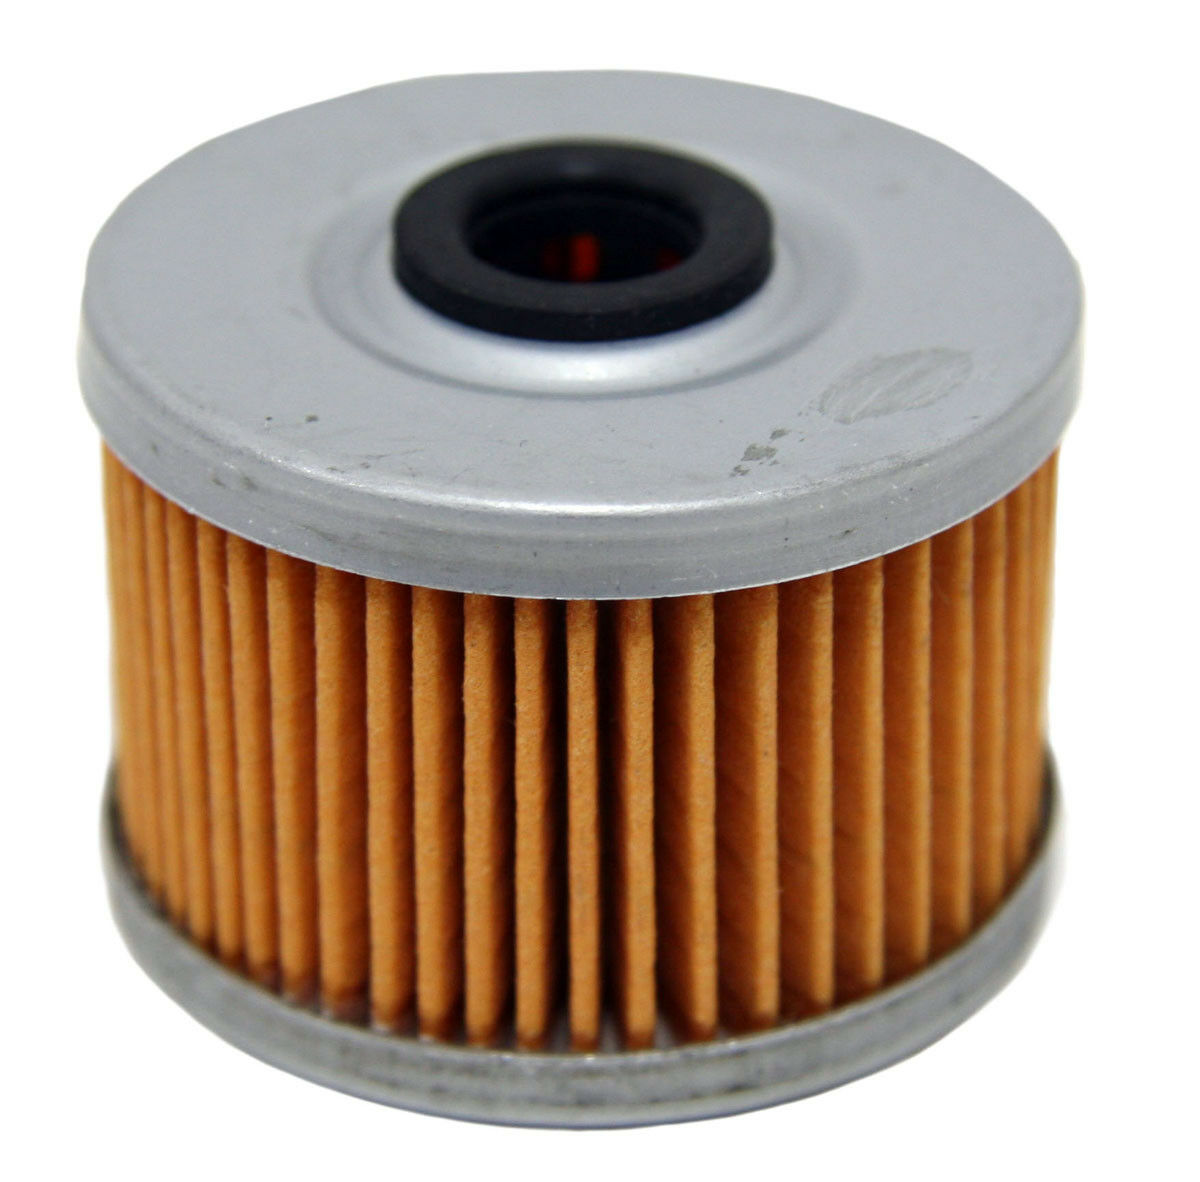 Oil Filter Honda Rancher 350 420 Trx300ex Trx400ex Fourtrax 300 Foreman 400 Fuel 1 Of 1only 5 Available